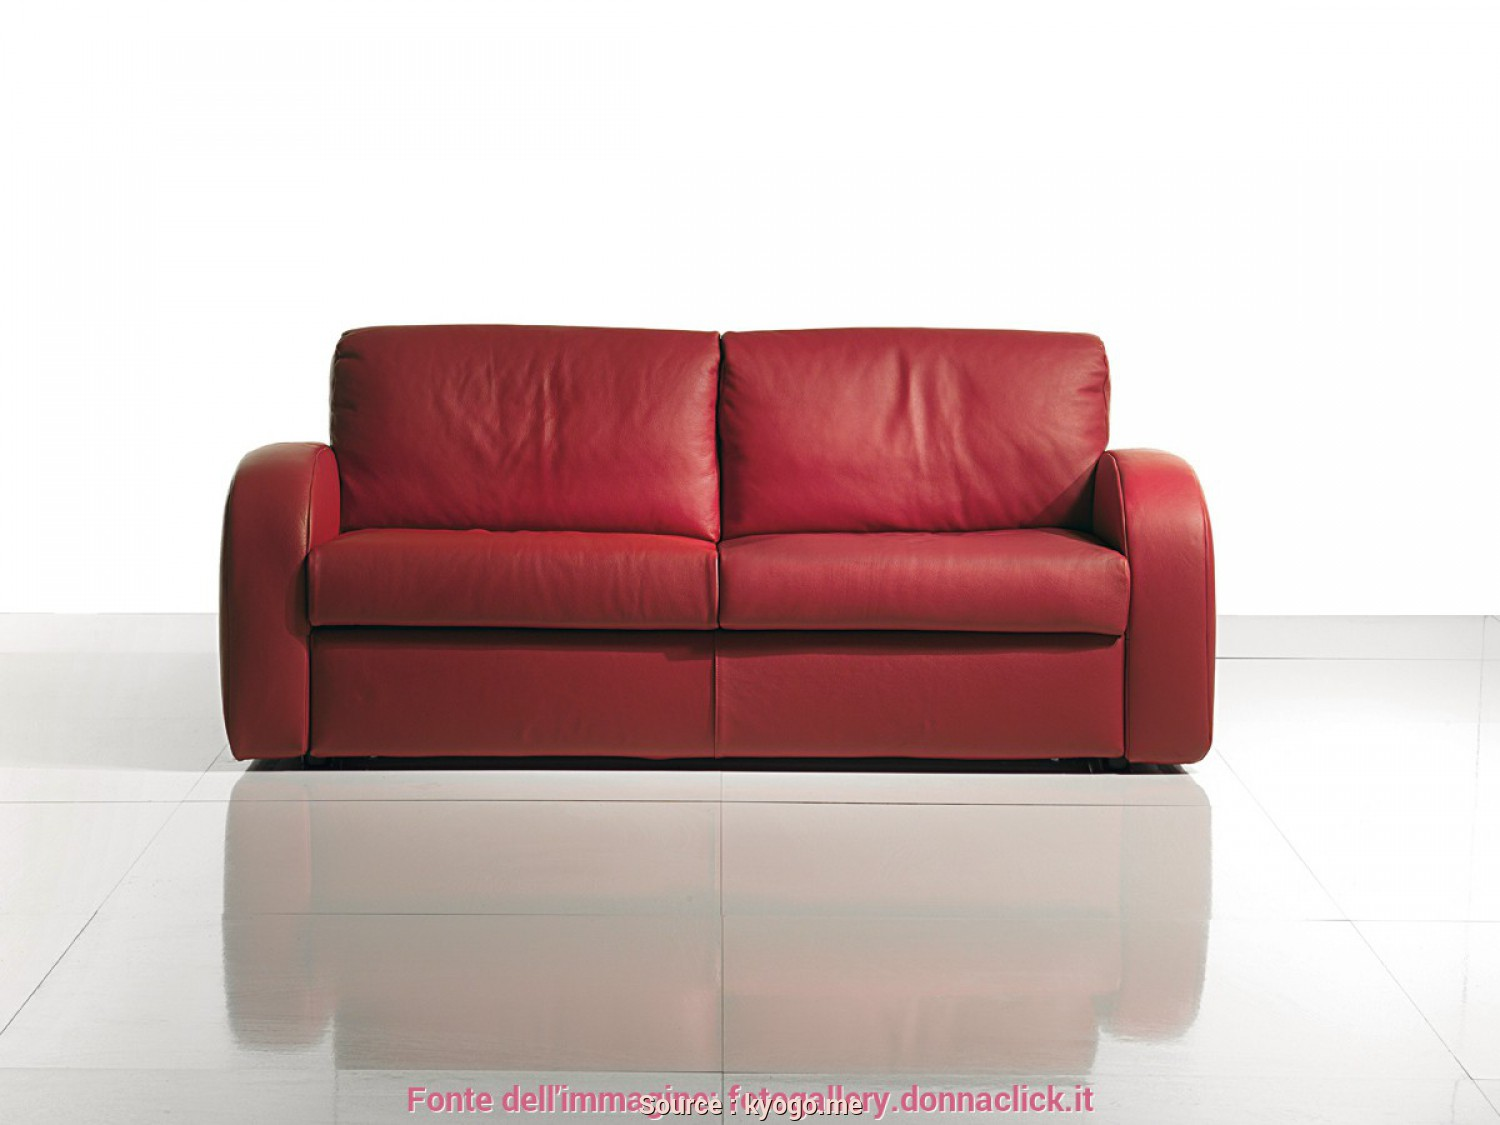 Casuale 4 Poltrone Sofa Divani In Pelle